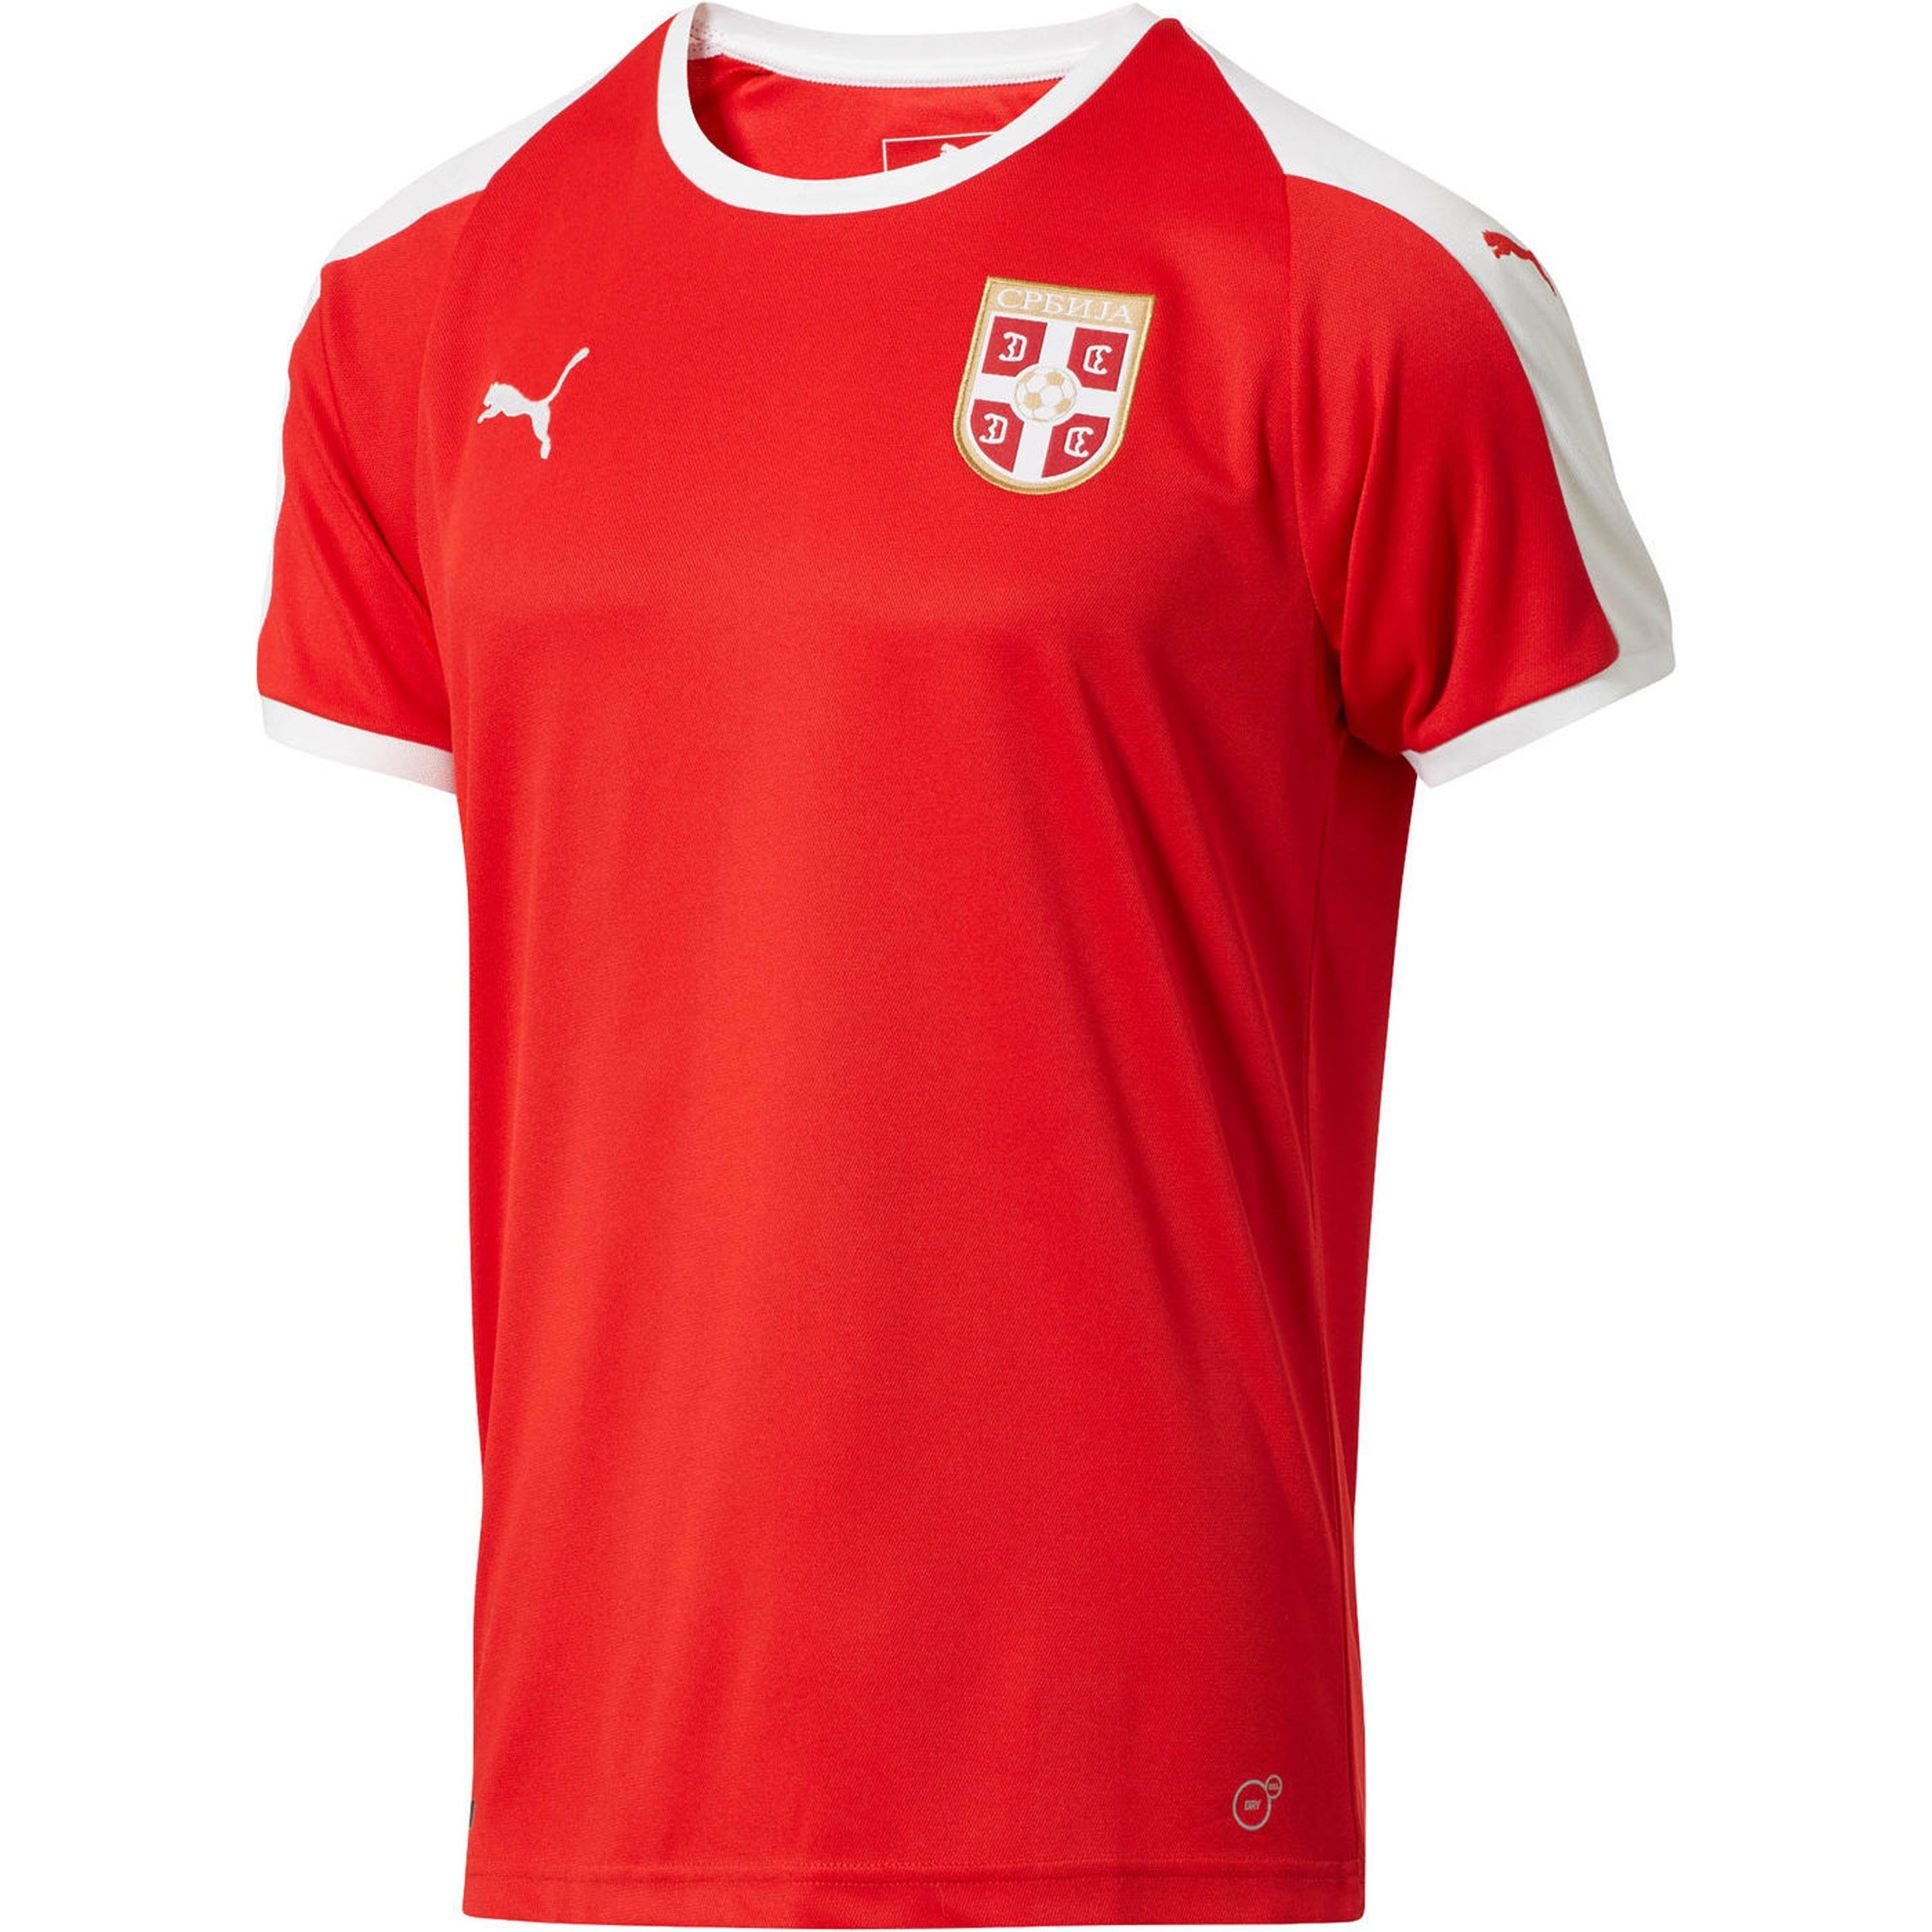 6d3a3d691d9 Costa Rica s traditionally red and white kit was released under the slogan